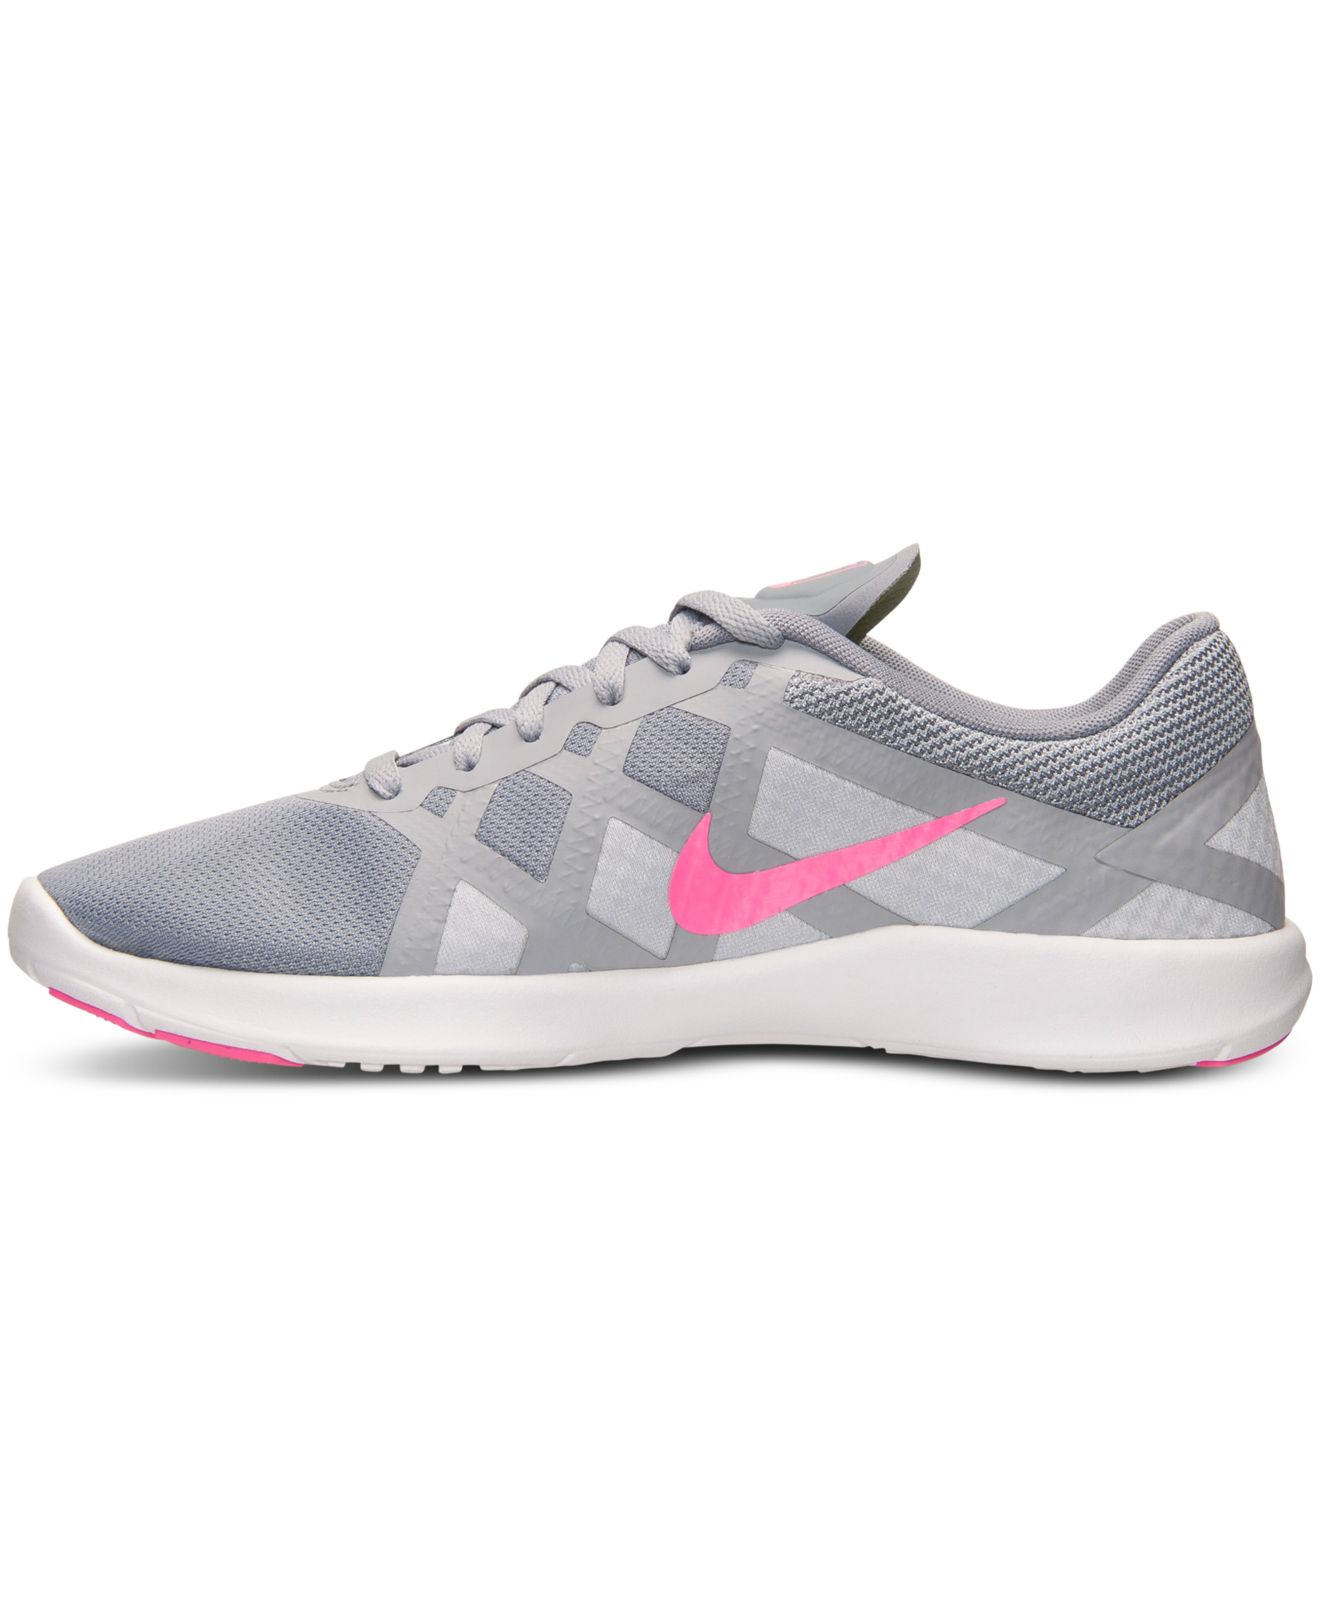 0ebf0e3a25 Lyst - Nike Women s Lunar Lux Tr Training Sneakers From Finish Line ...